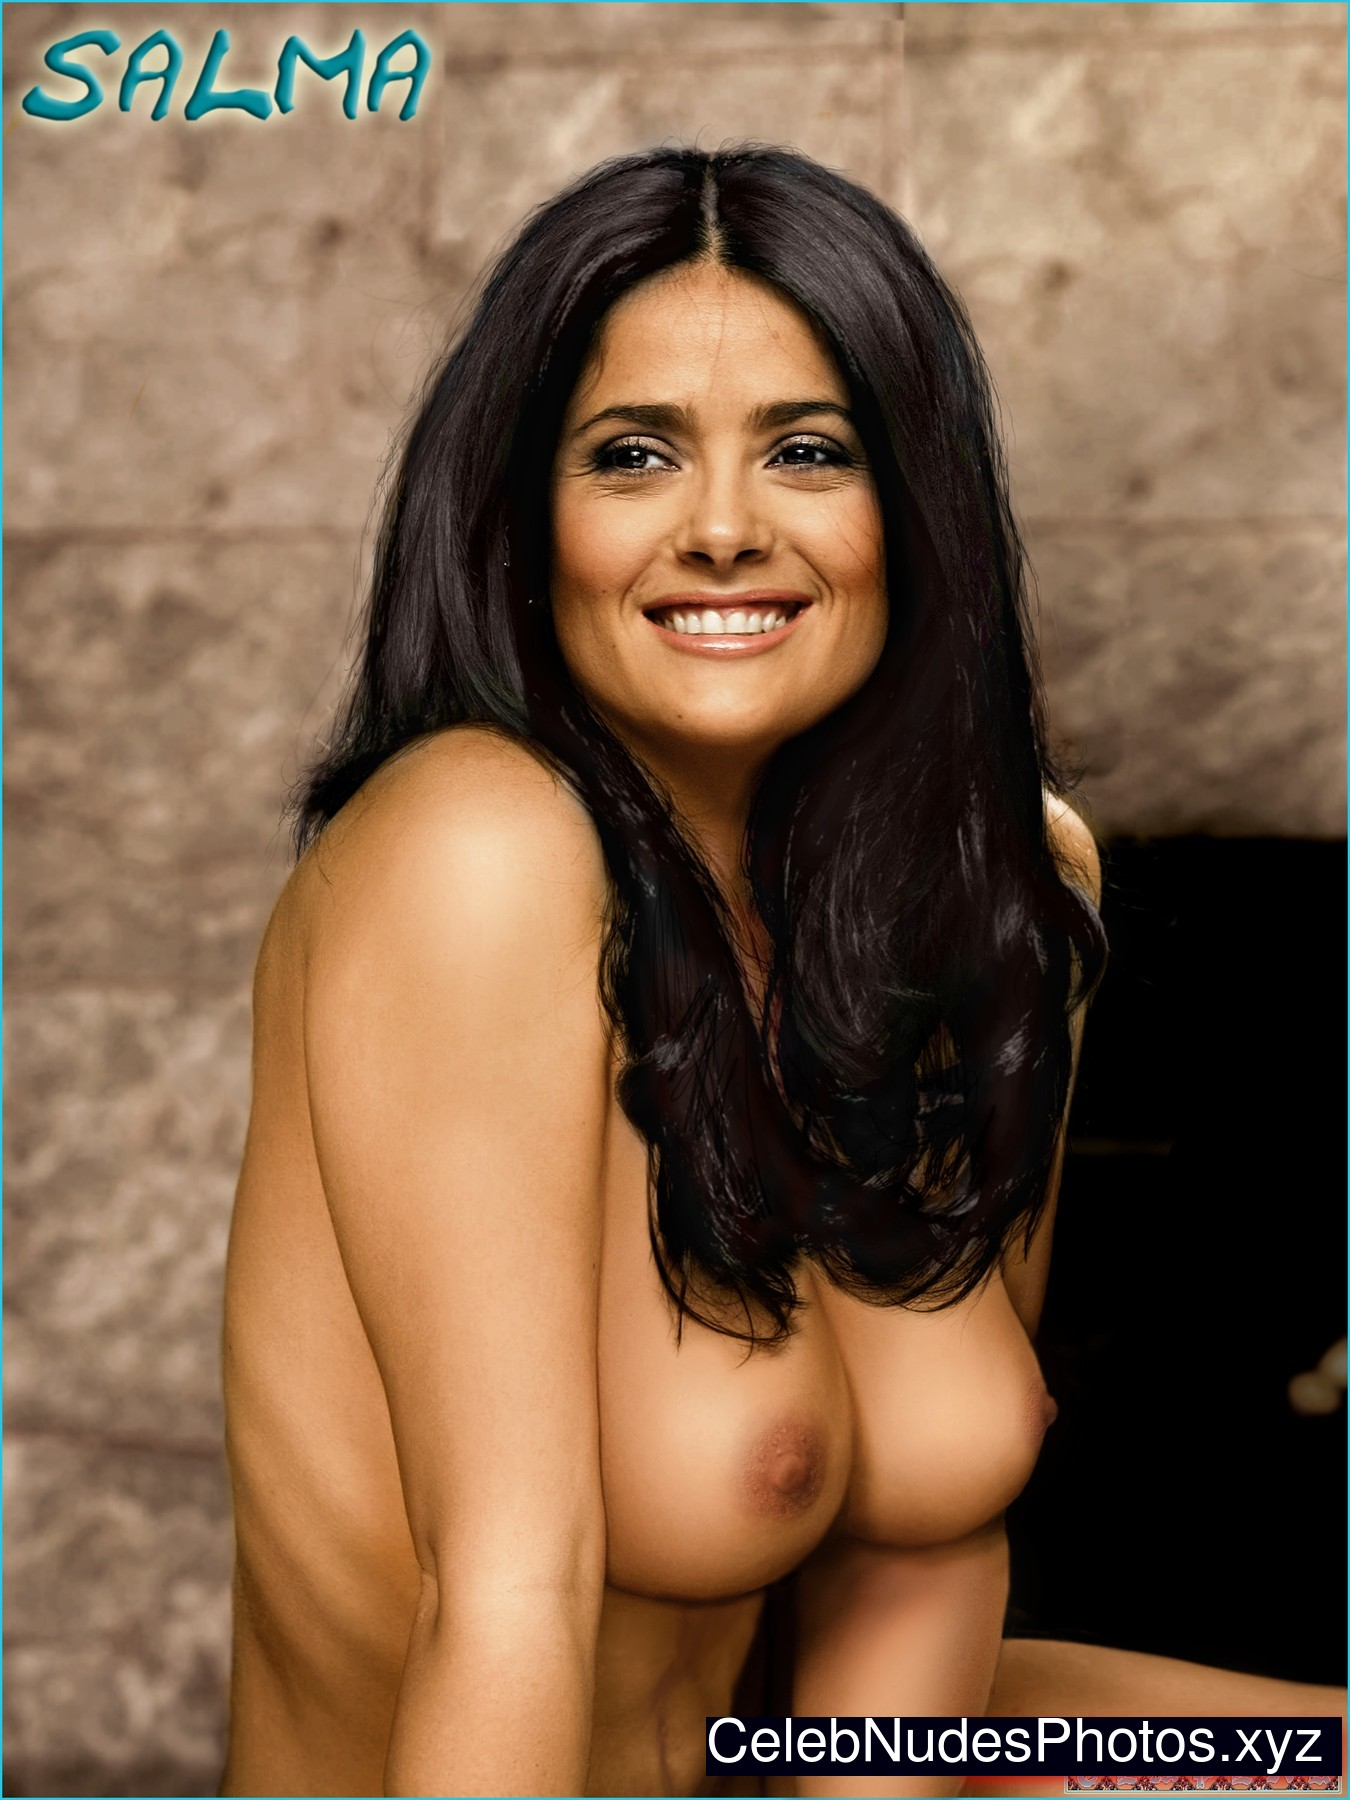 salma hayek nude photos